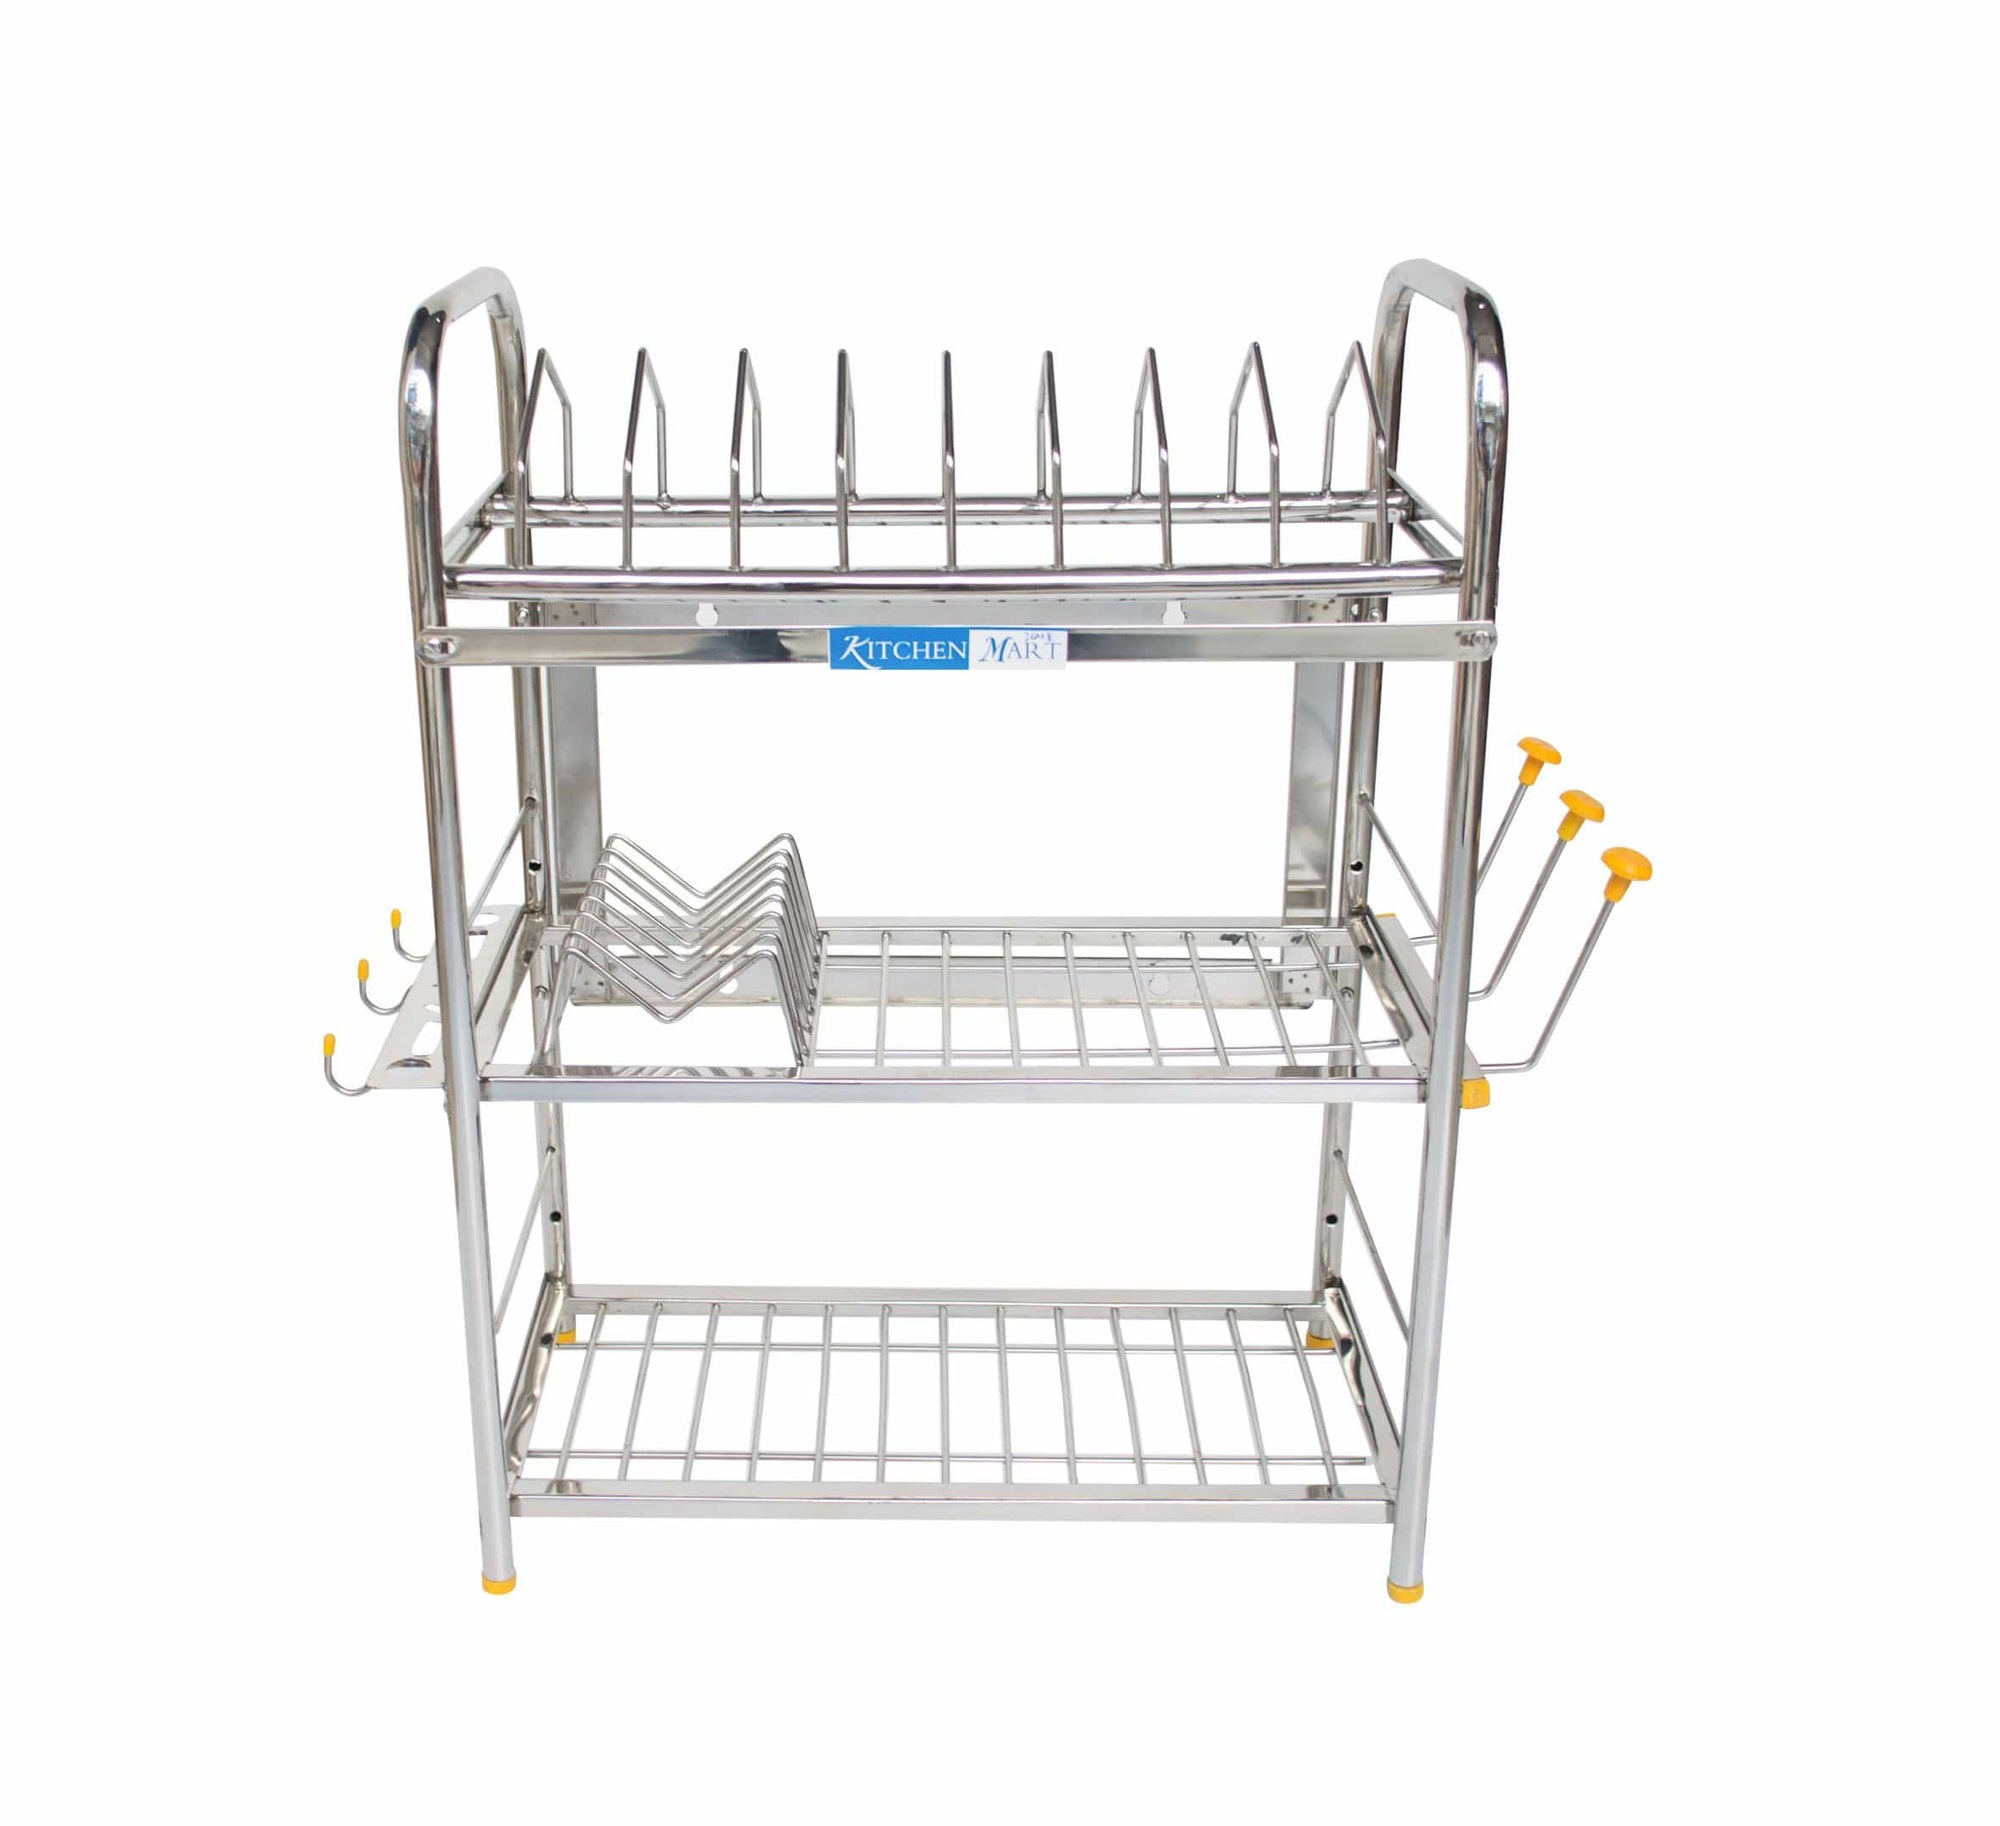 Kitchen Mart Stainless Steel Kitchen Rack (24 x 18 inch) - KITCHEN MART